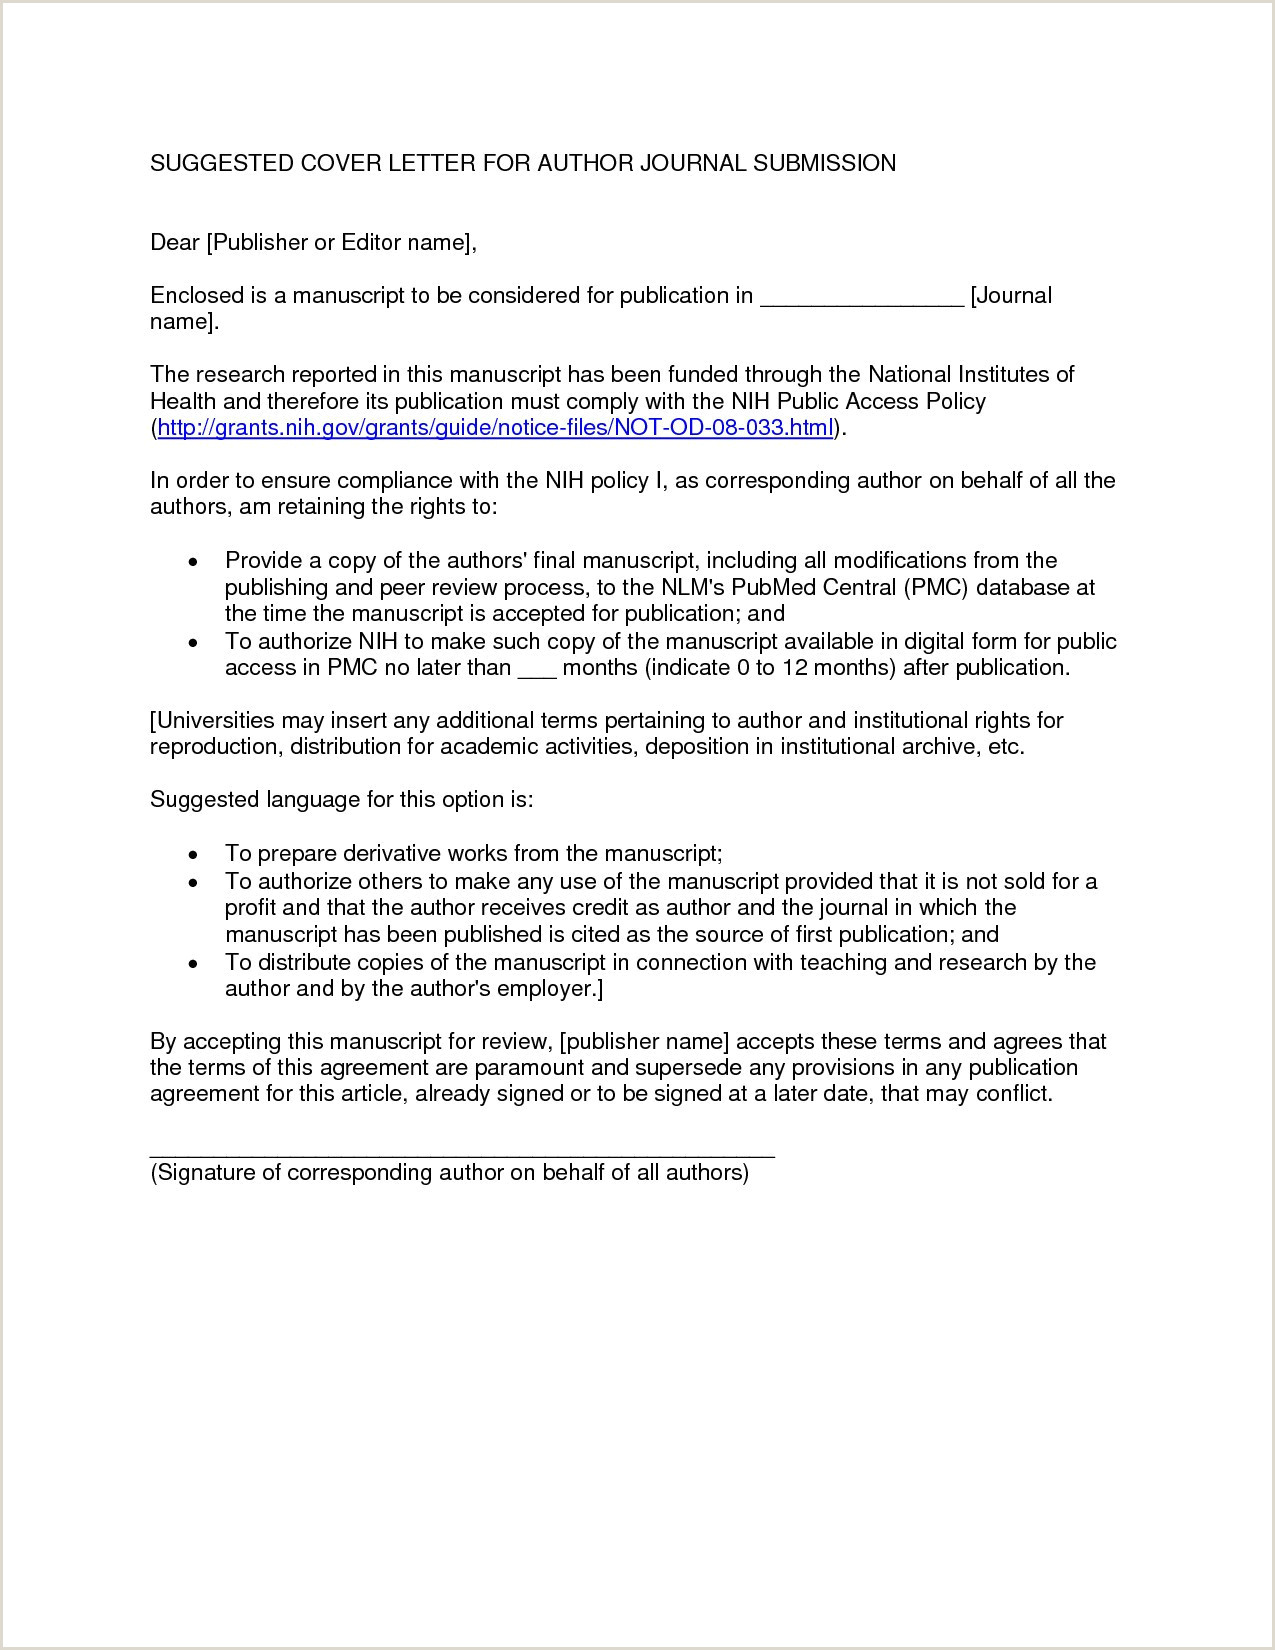 Air force Letter Of Counseling Examples 10 Air force Letter Of Counseling Examples